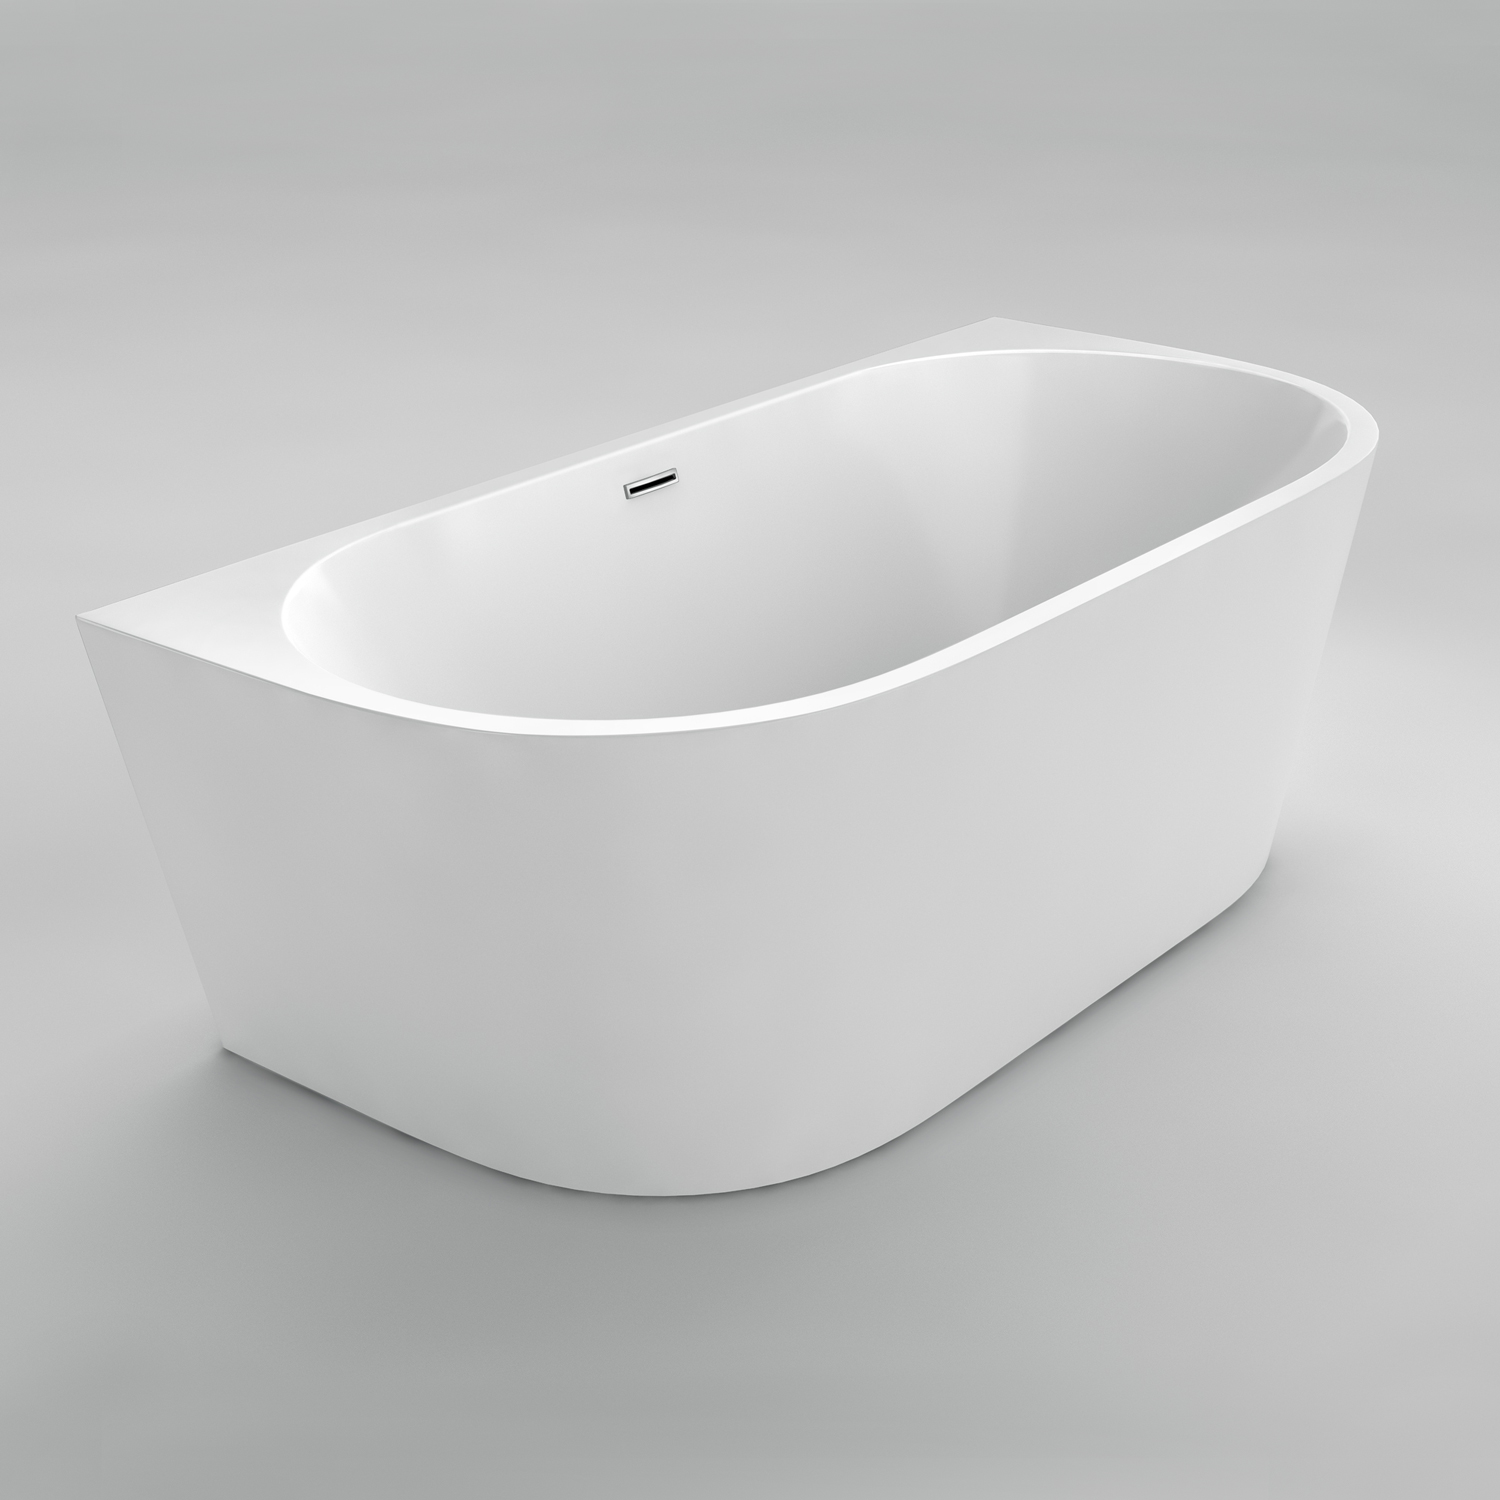 Island tub drain acri tec bath and kitchen products - Rochelle 67 Rochelle 67